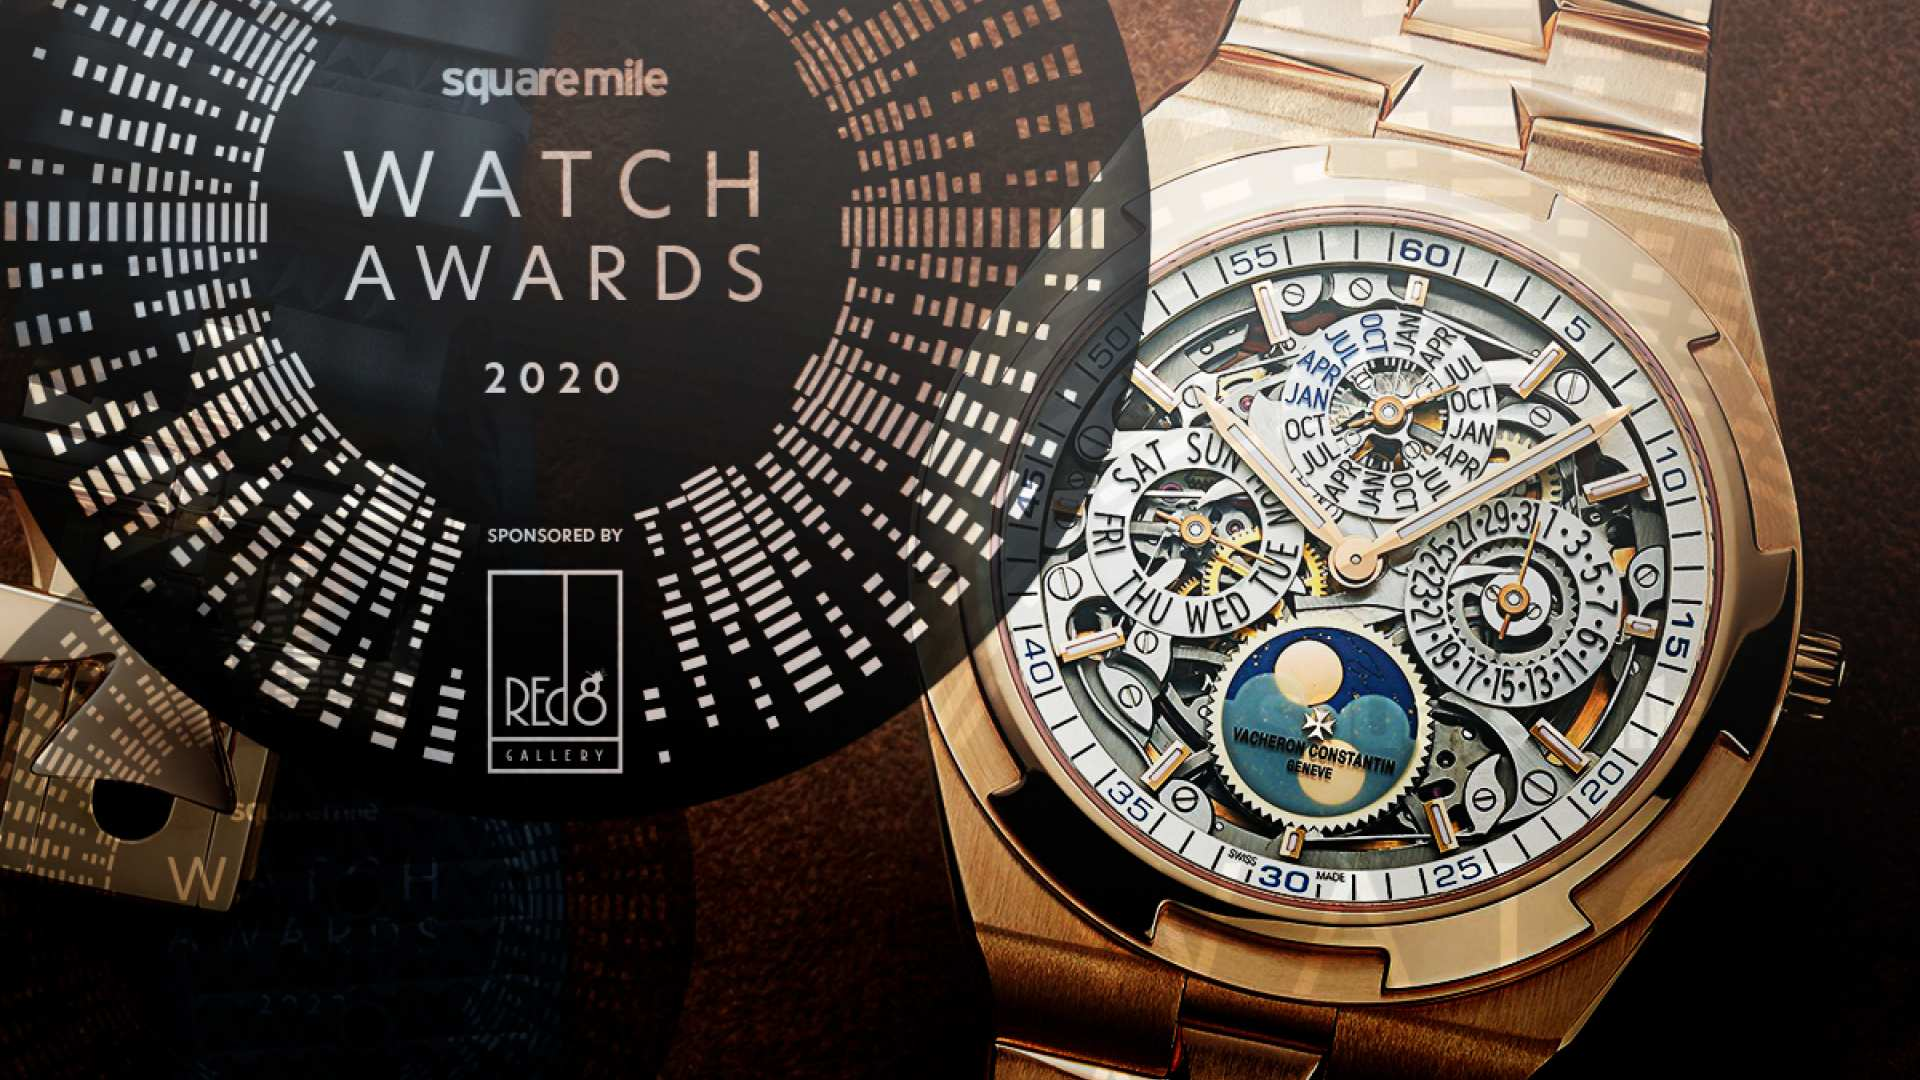 Square Mile Watch Awards 2020 – The Winners